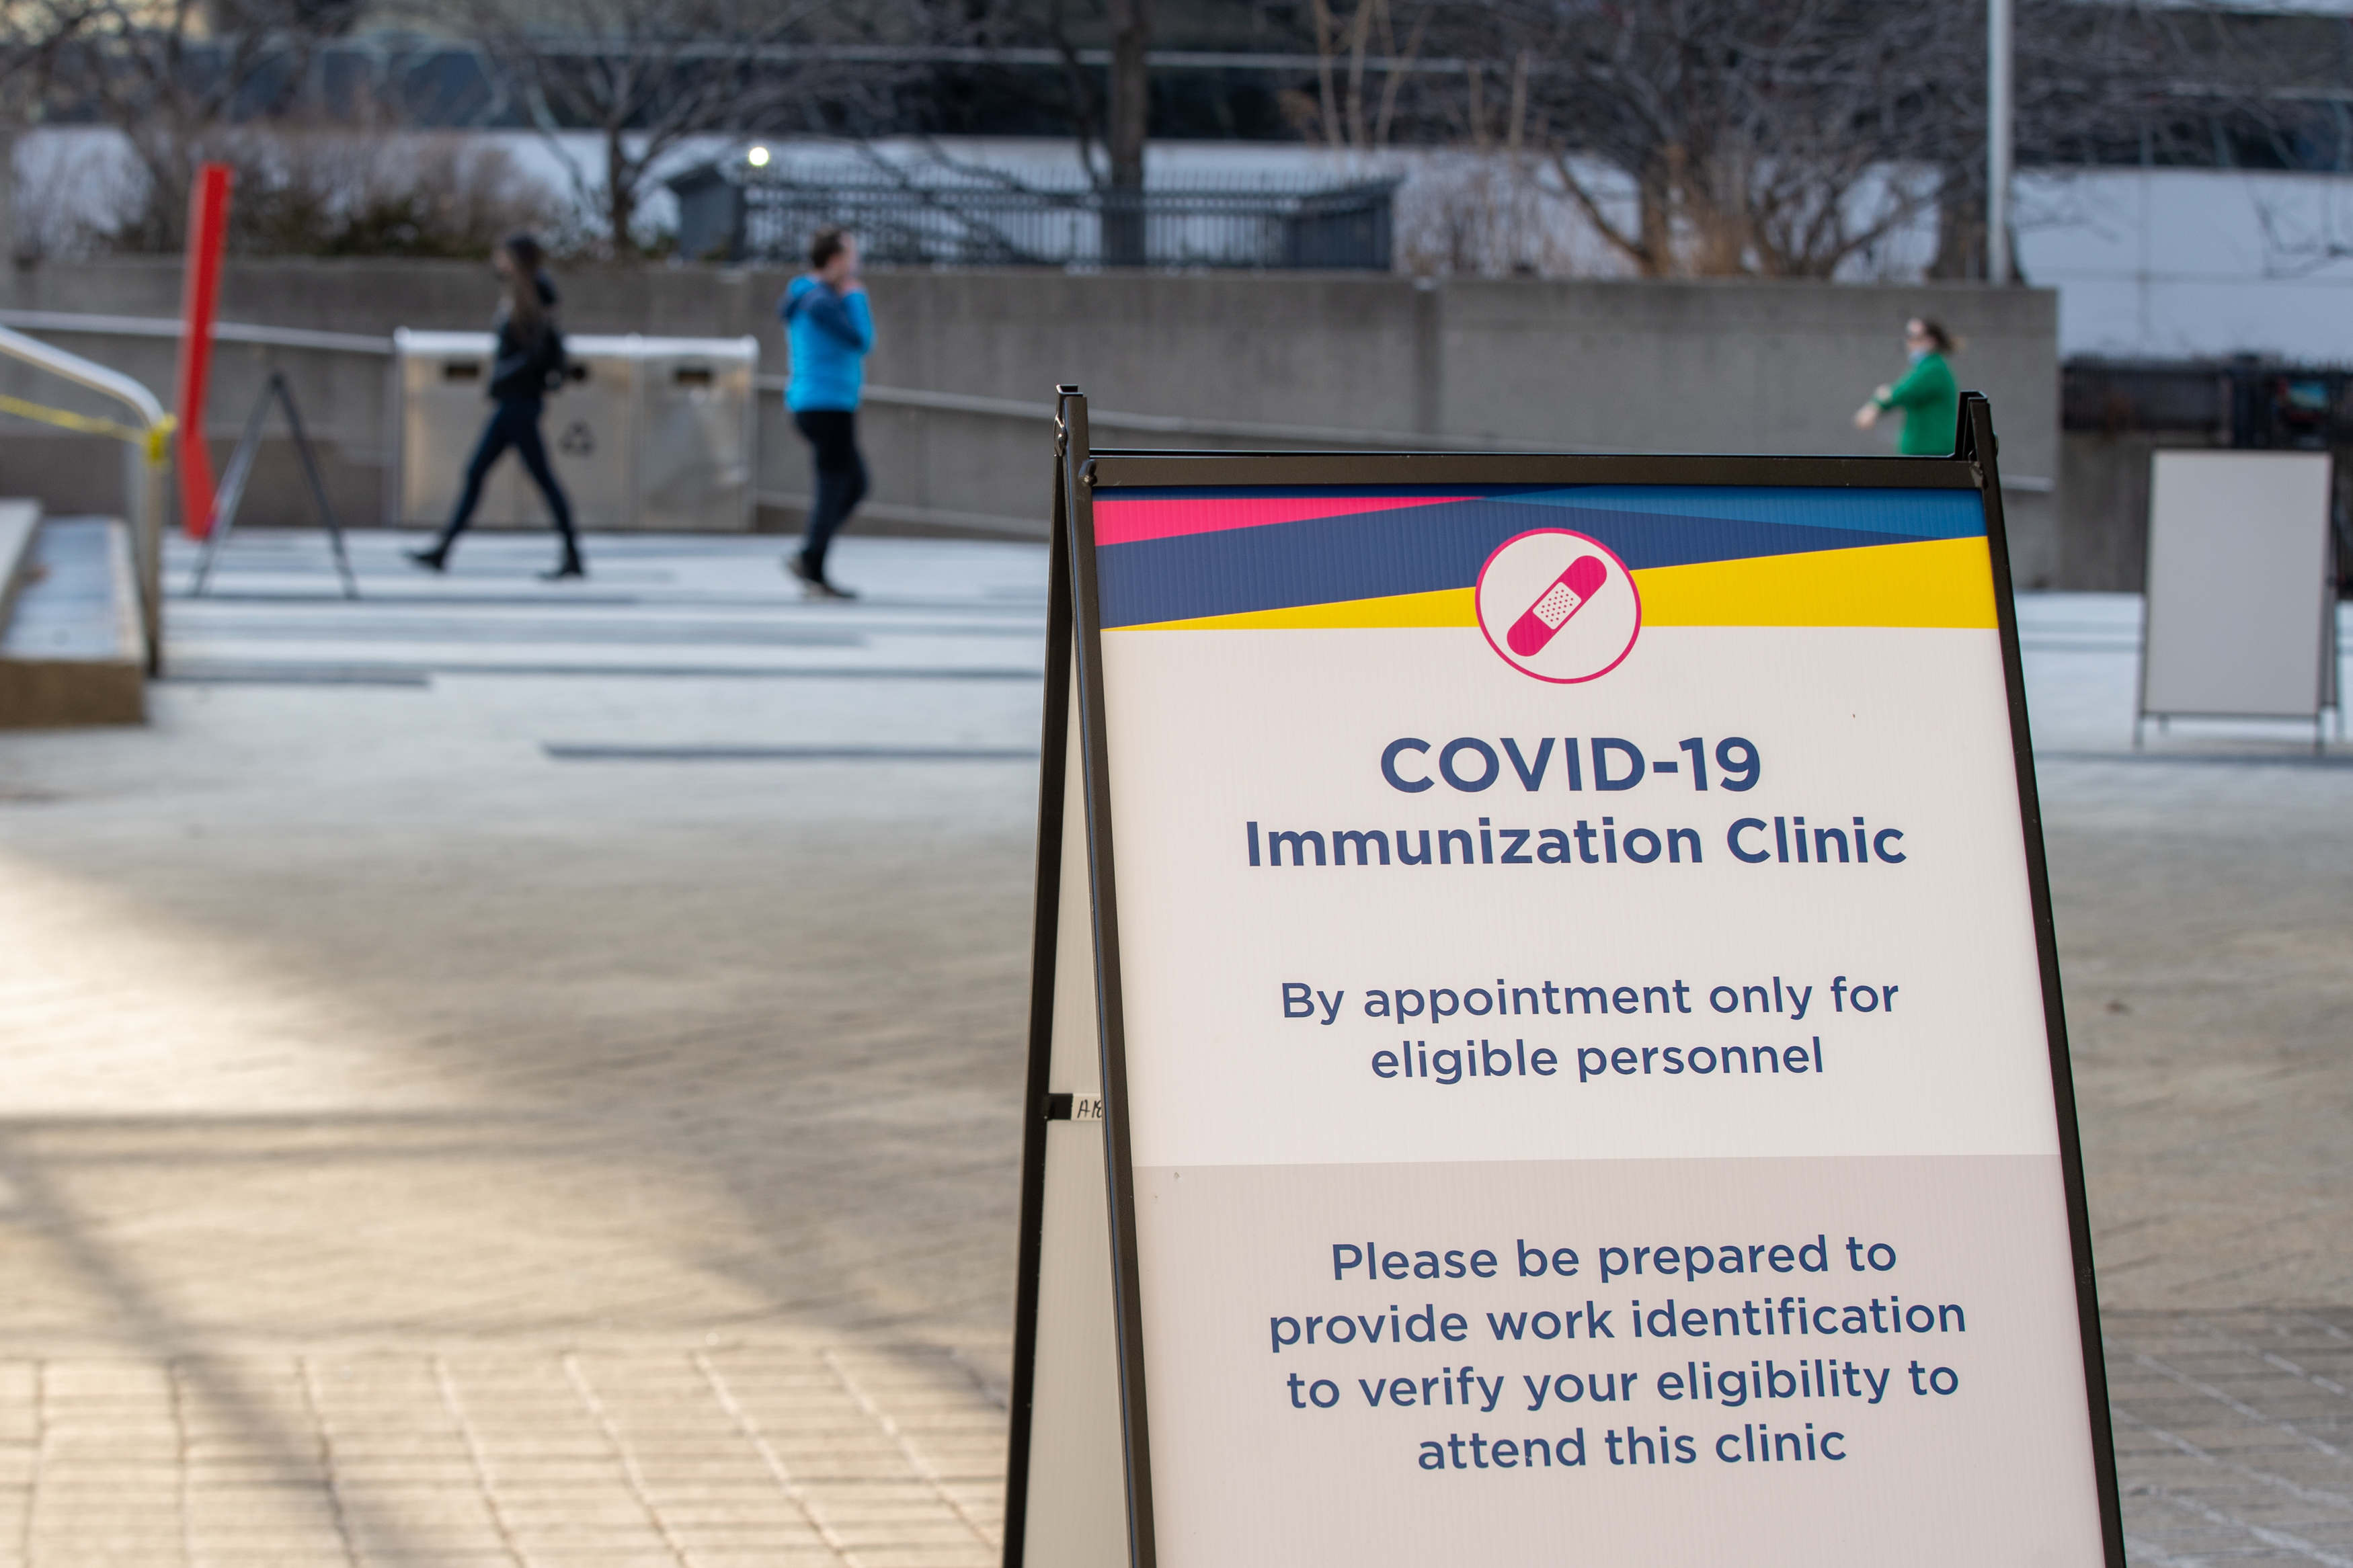 Ontario residents aged 60 and over can now book a vaccine appointment